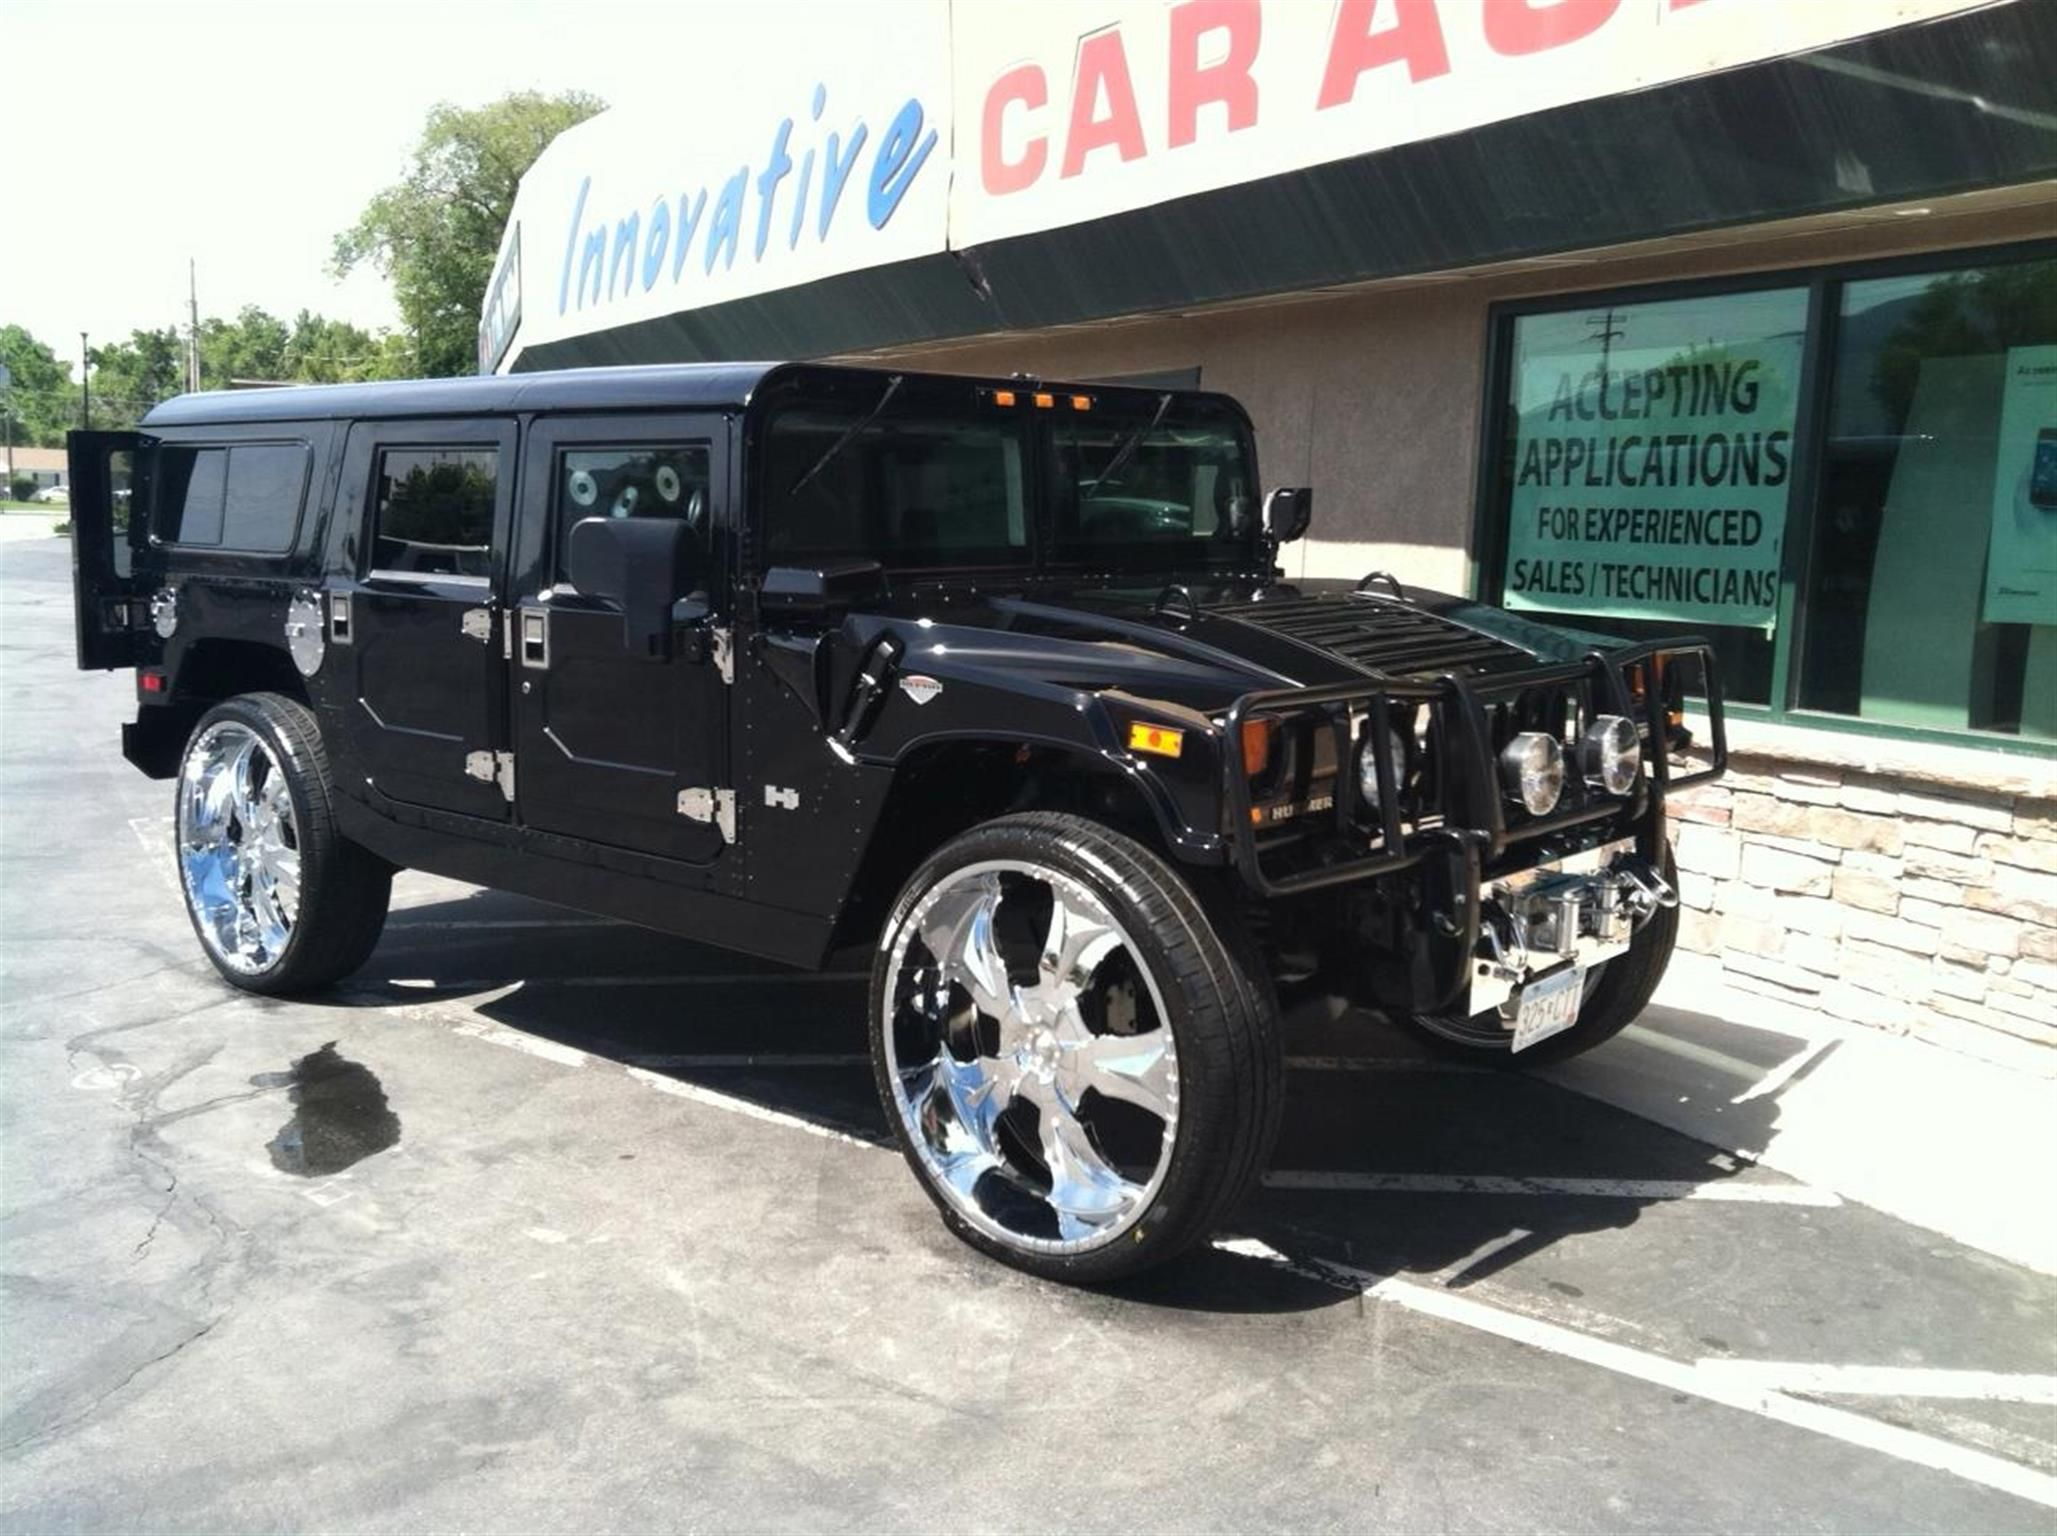 Hummer after modification and or restoration by Innovative Audio